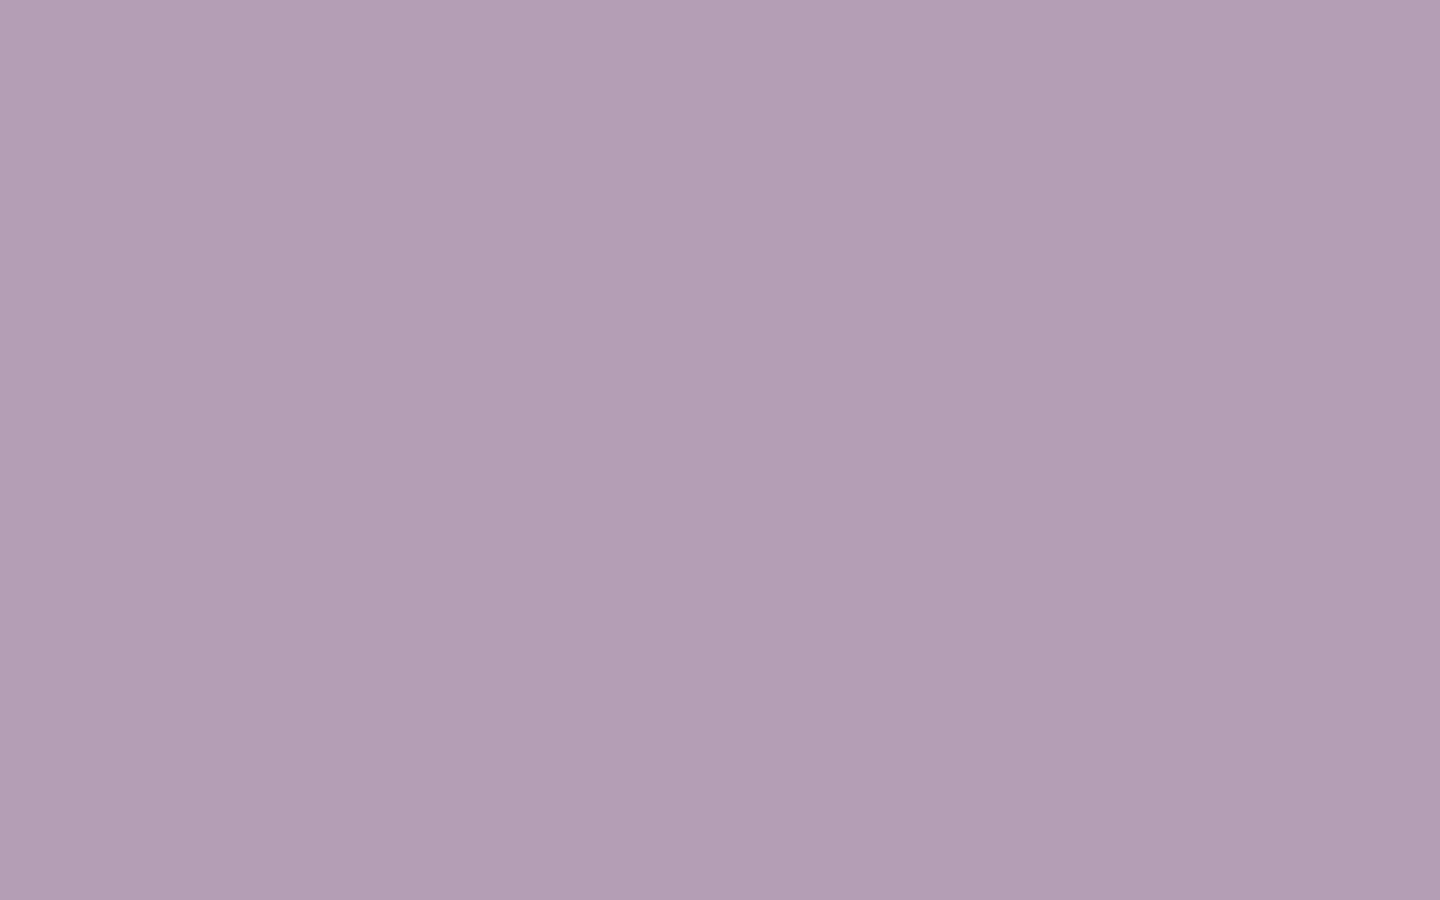 1440x900 Pastel Purple Solid Color Background